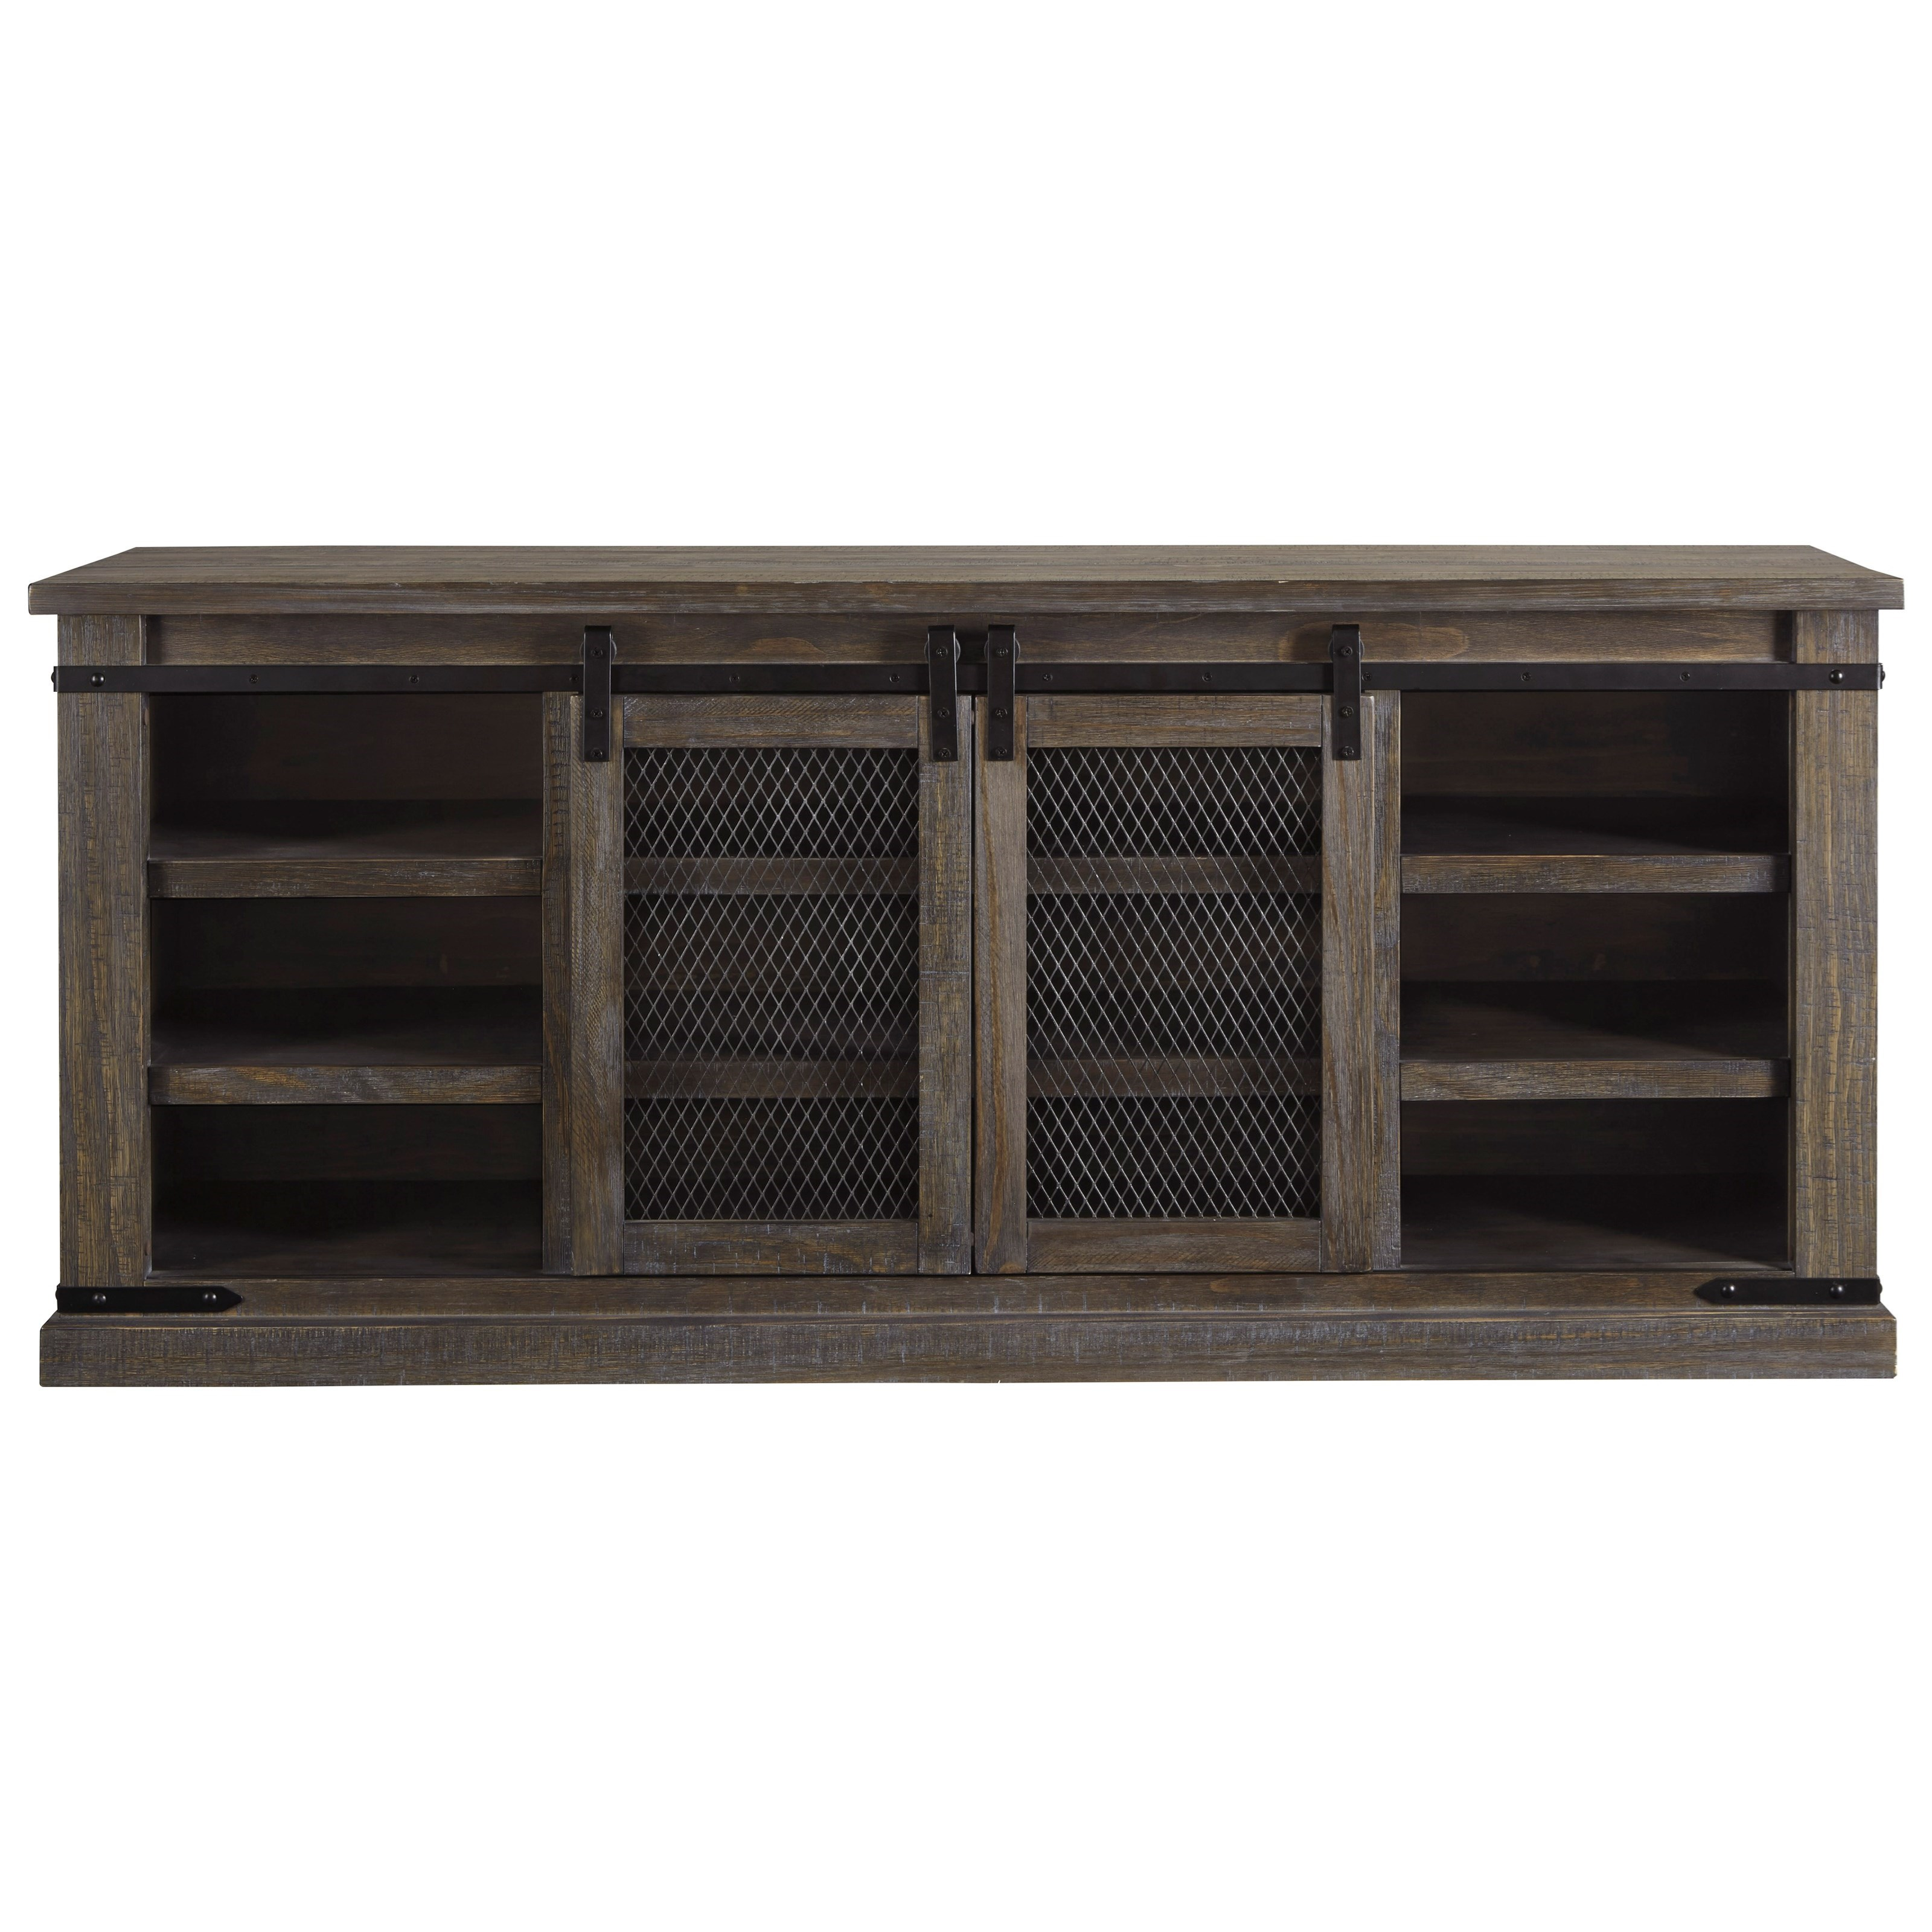 Signature Design By Ashley Danell Ridge 70 Rustic Tv Stand With